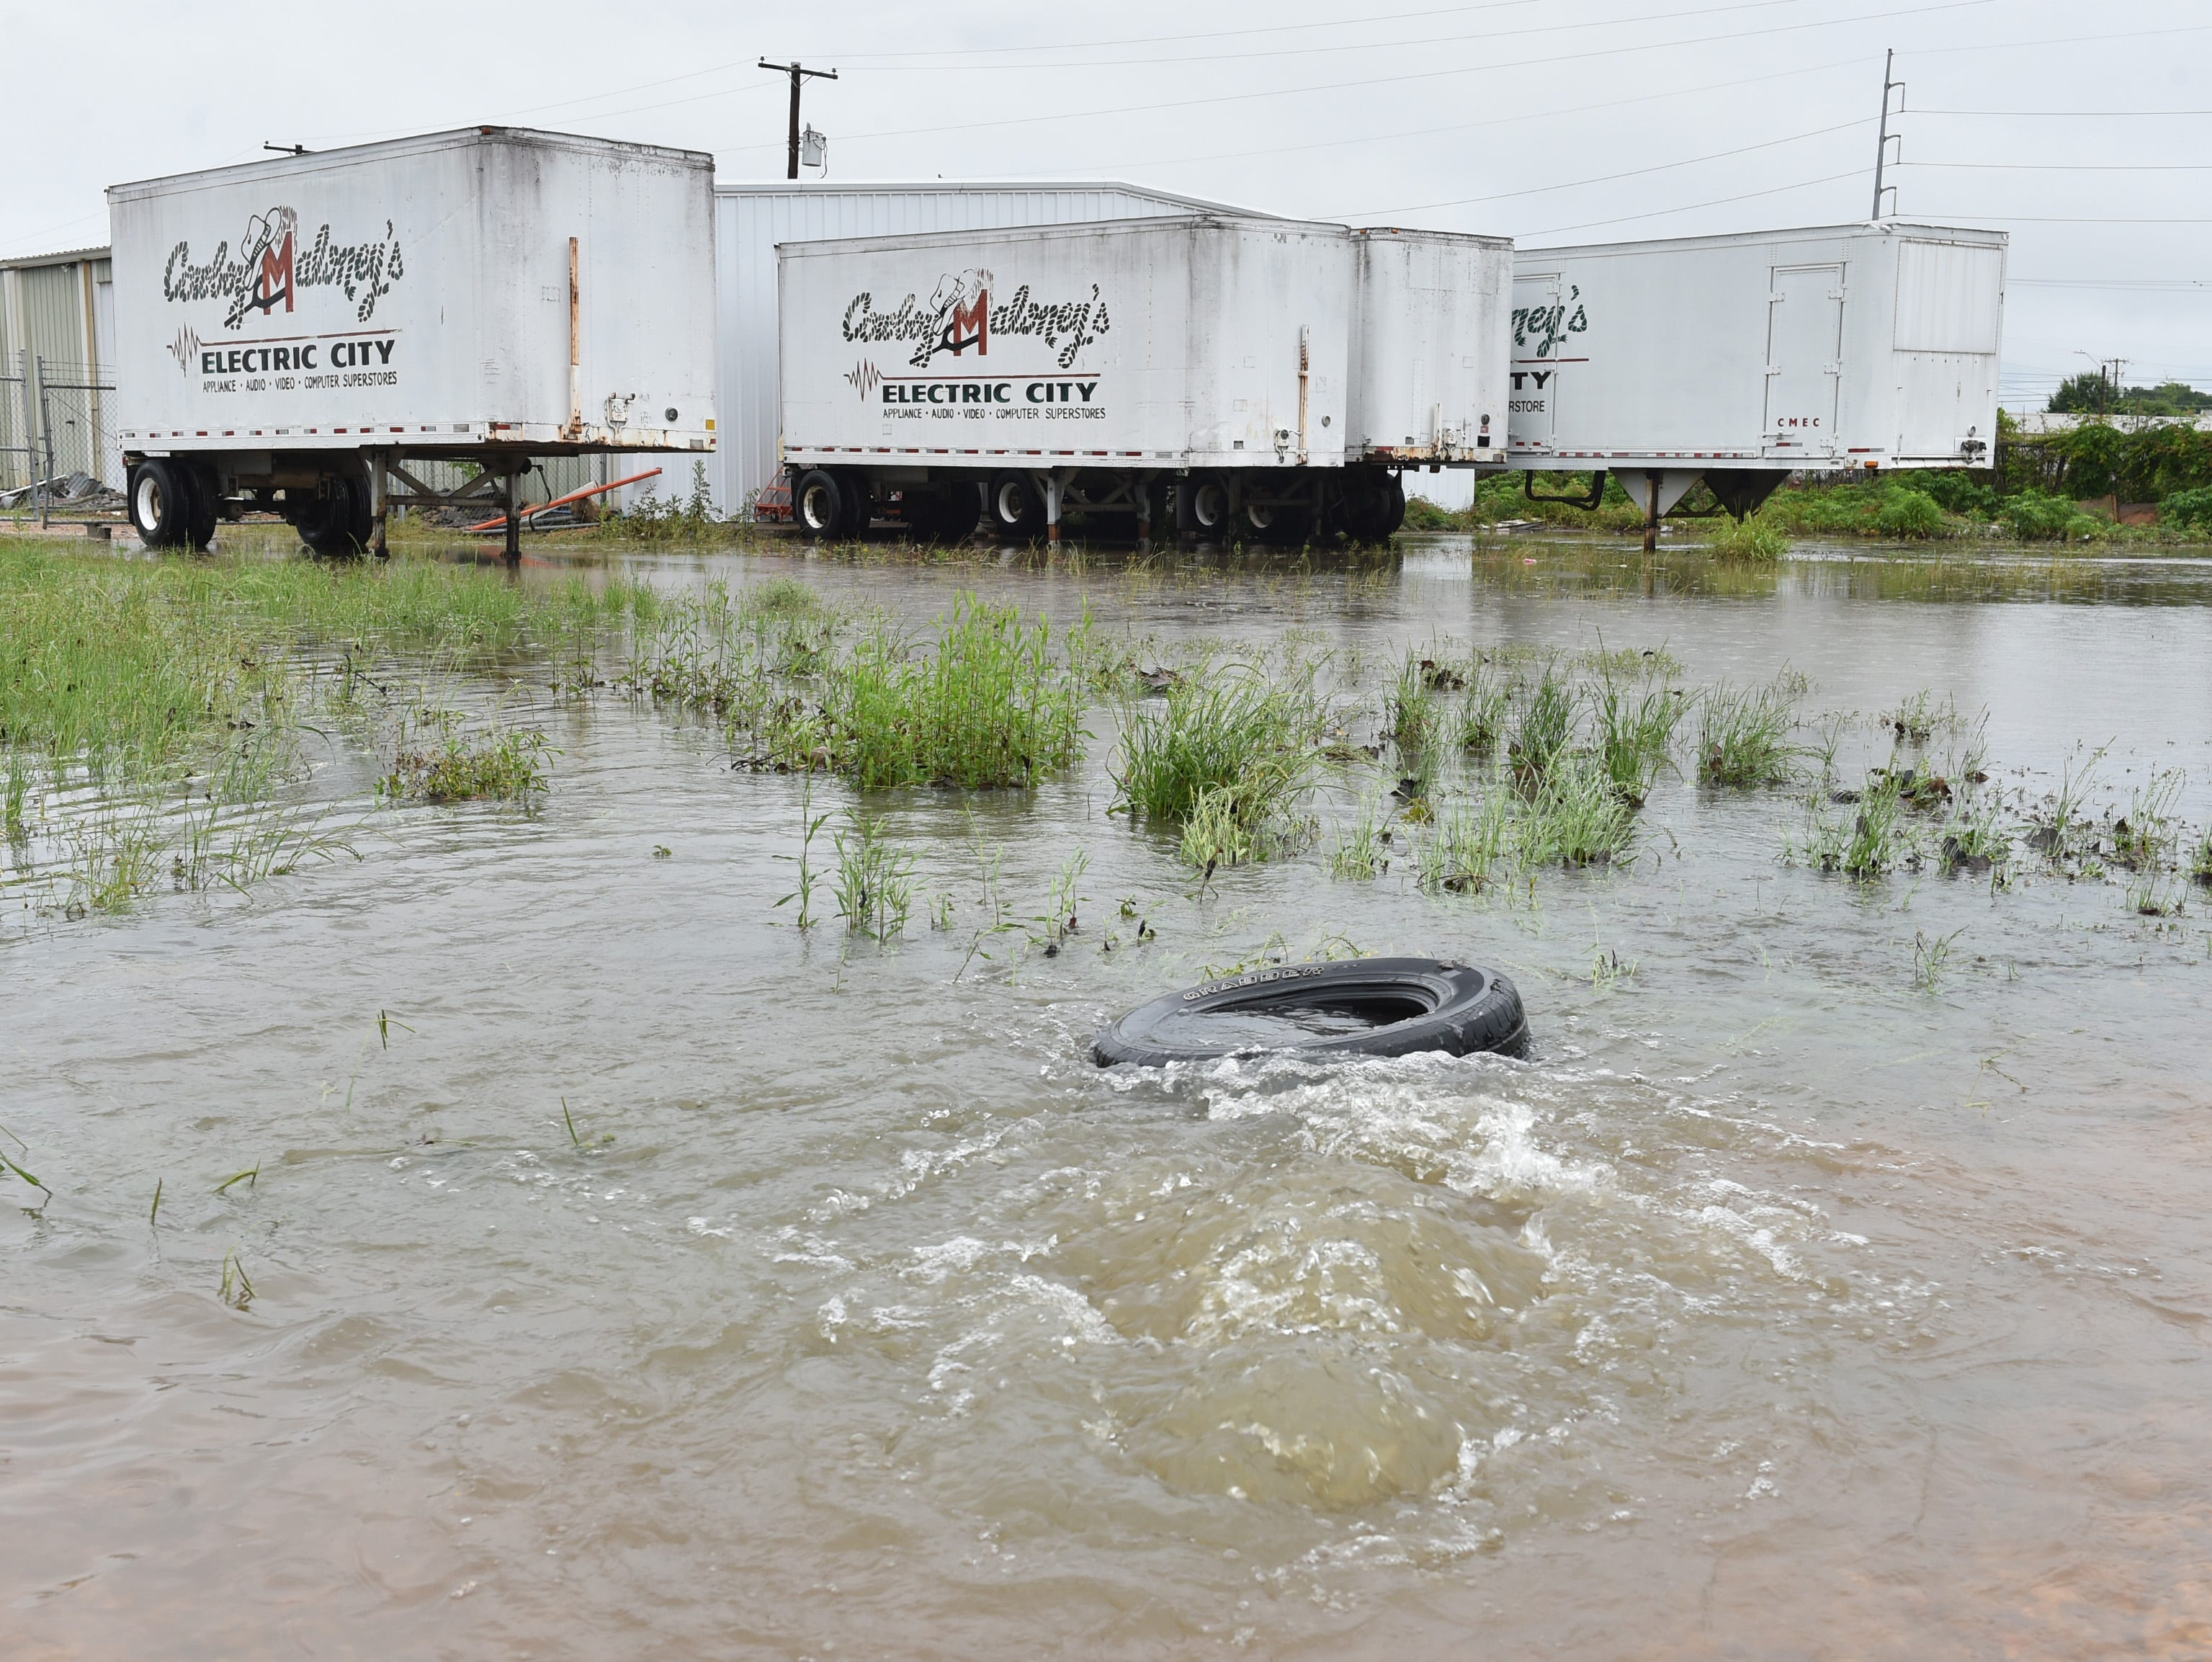 Vine street between Lamar and Monroe streets was overwhelmed with water during the rain storm on Thursday, May 9, 2019 in Jackson.